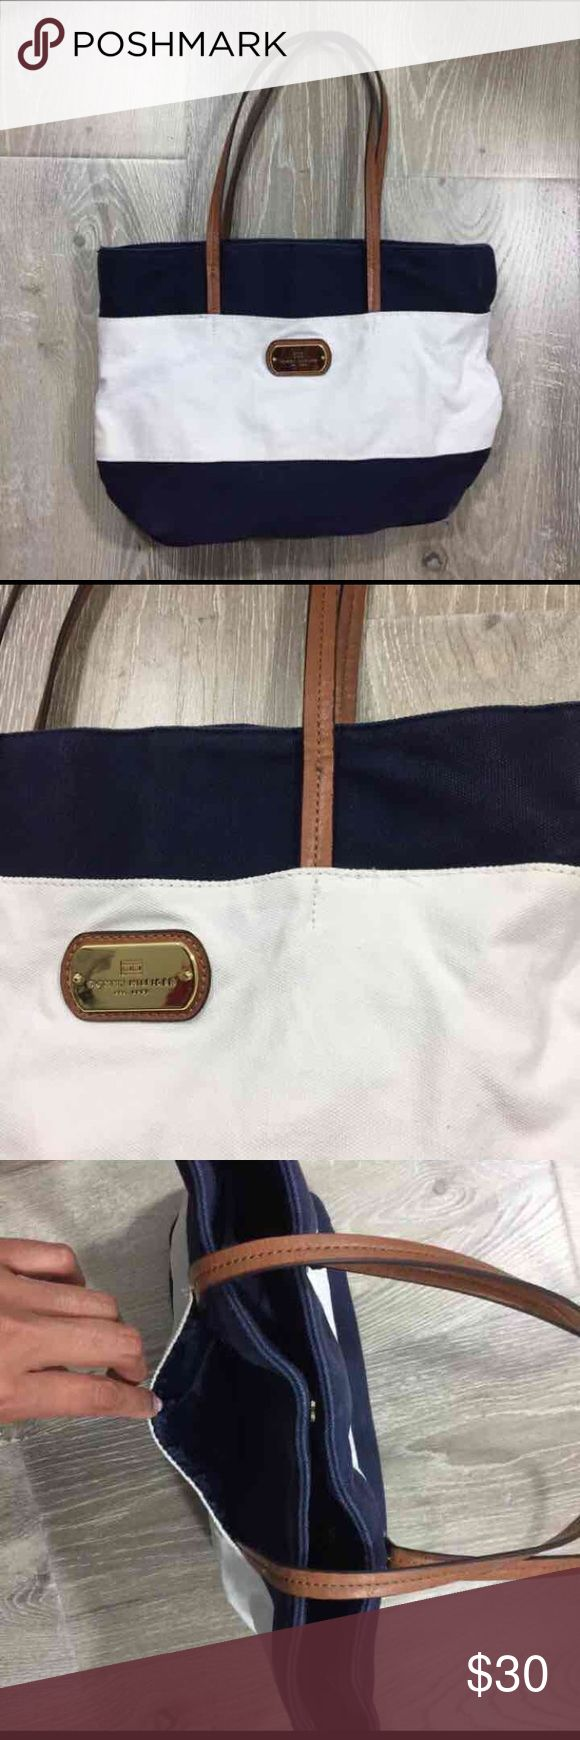 TOMMY HILFIGER • striped beach bag Minor fade in color no other flaws • medium sized bag Tommy Hilfiger Bags Shoulder Bags